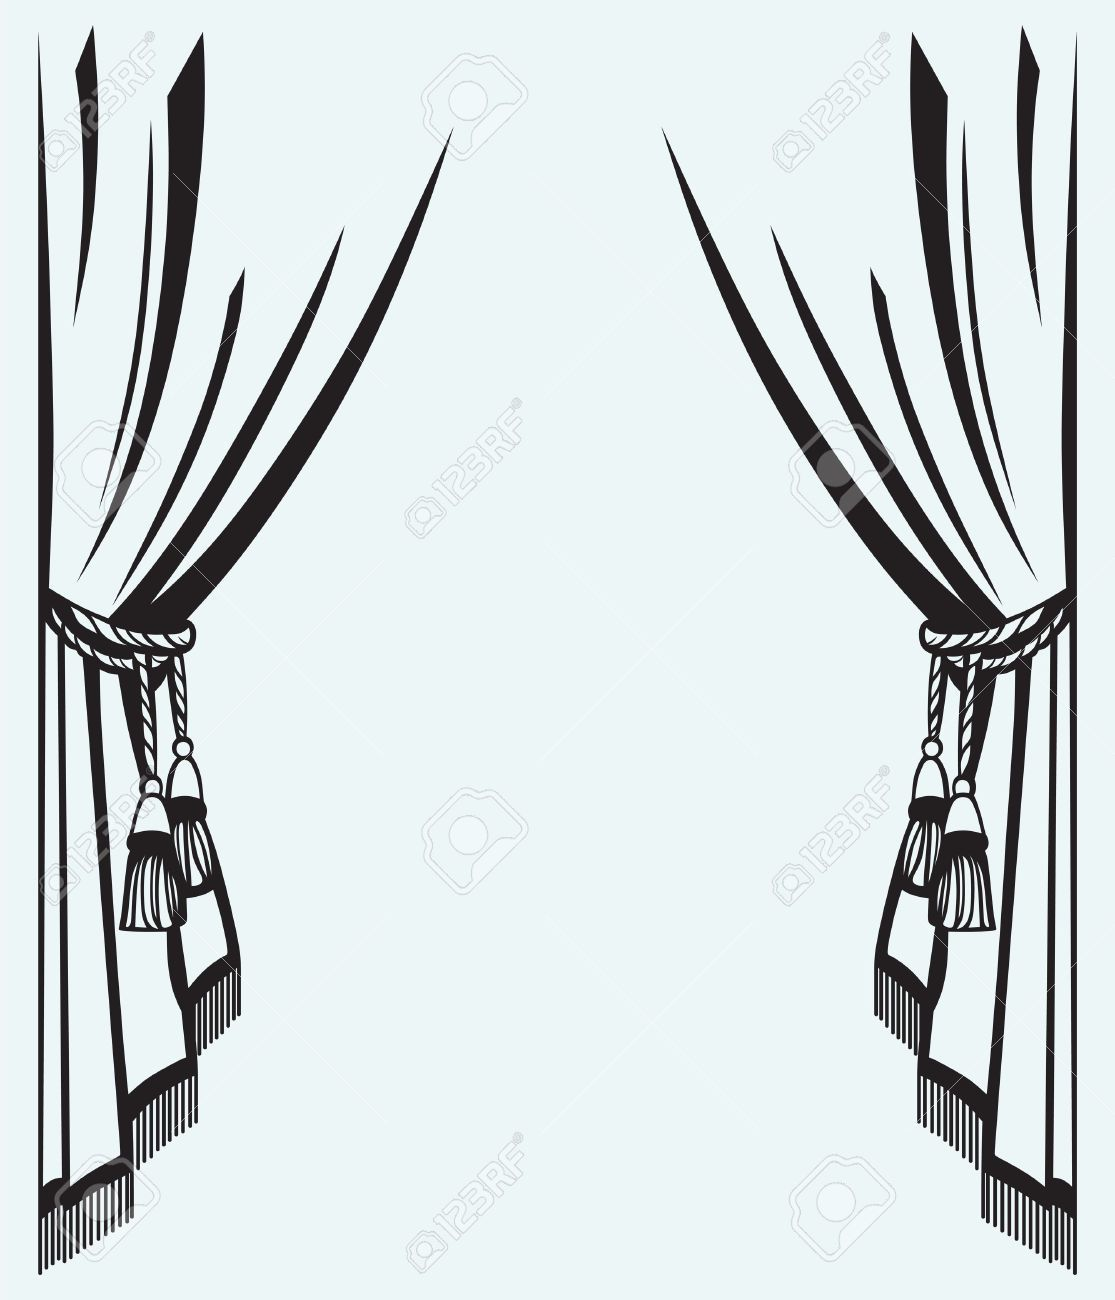 Closed stage curtains clipart black and white clip art freeuse library Theater Curtains Drawing | Free download best Theater Curtains ... clip art freeuse library